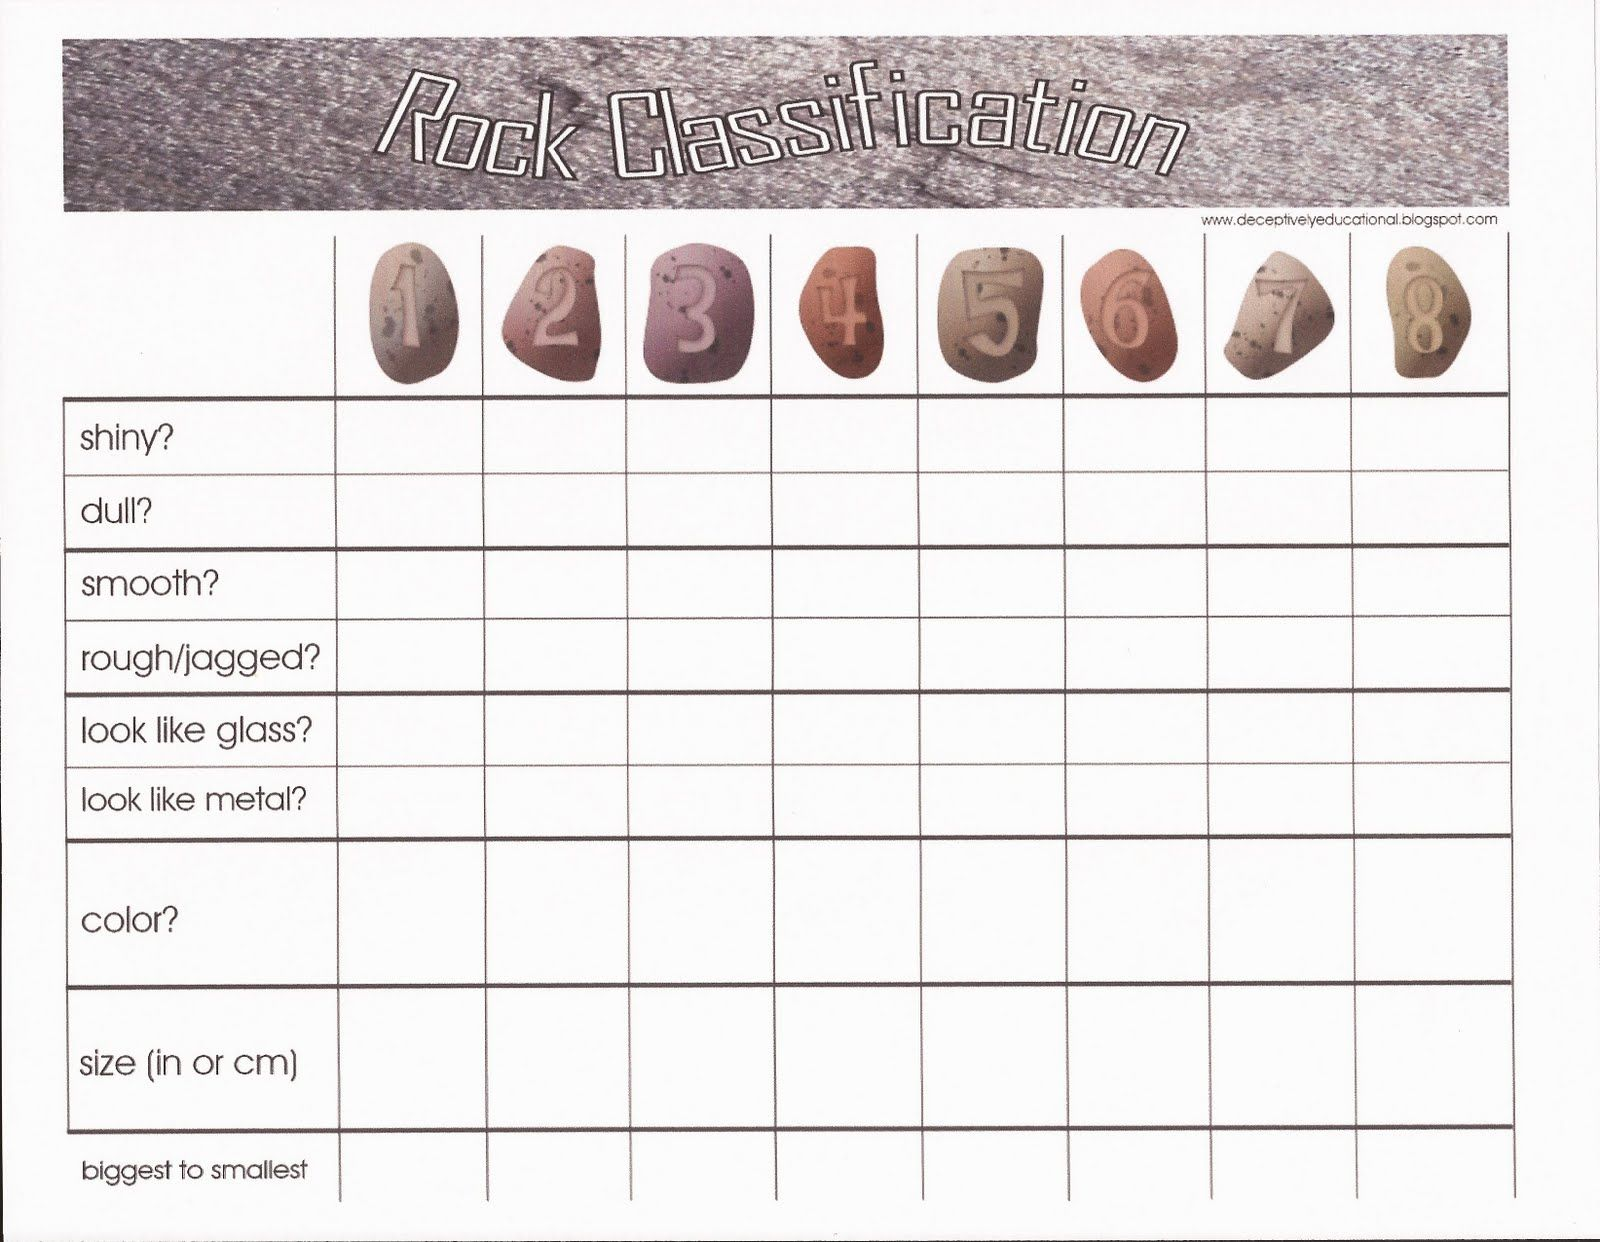 worksheet Kinds Of Rocks Worksheet types of rocks worksheet sc1steducation com relentlessly fun deceptively educational backyard rock free printable classification from